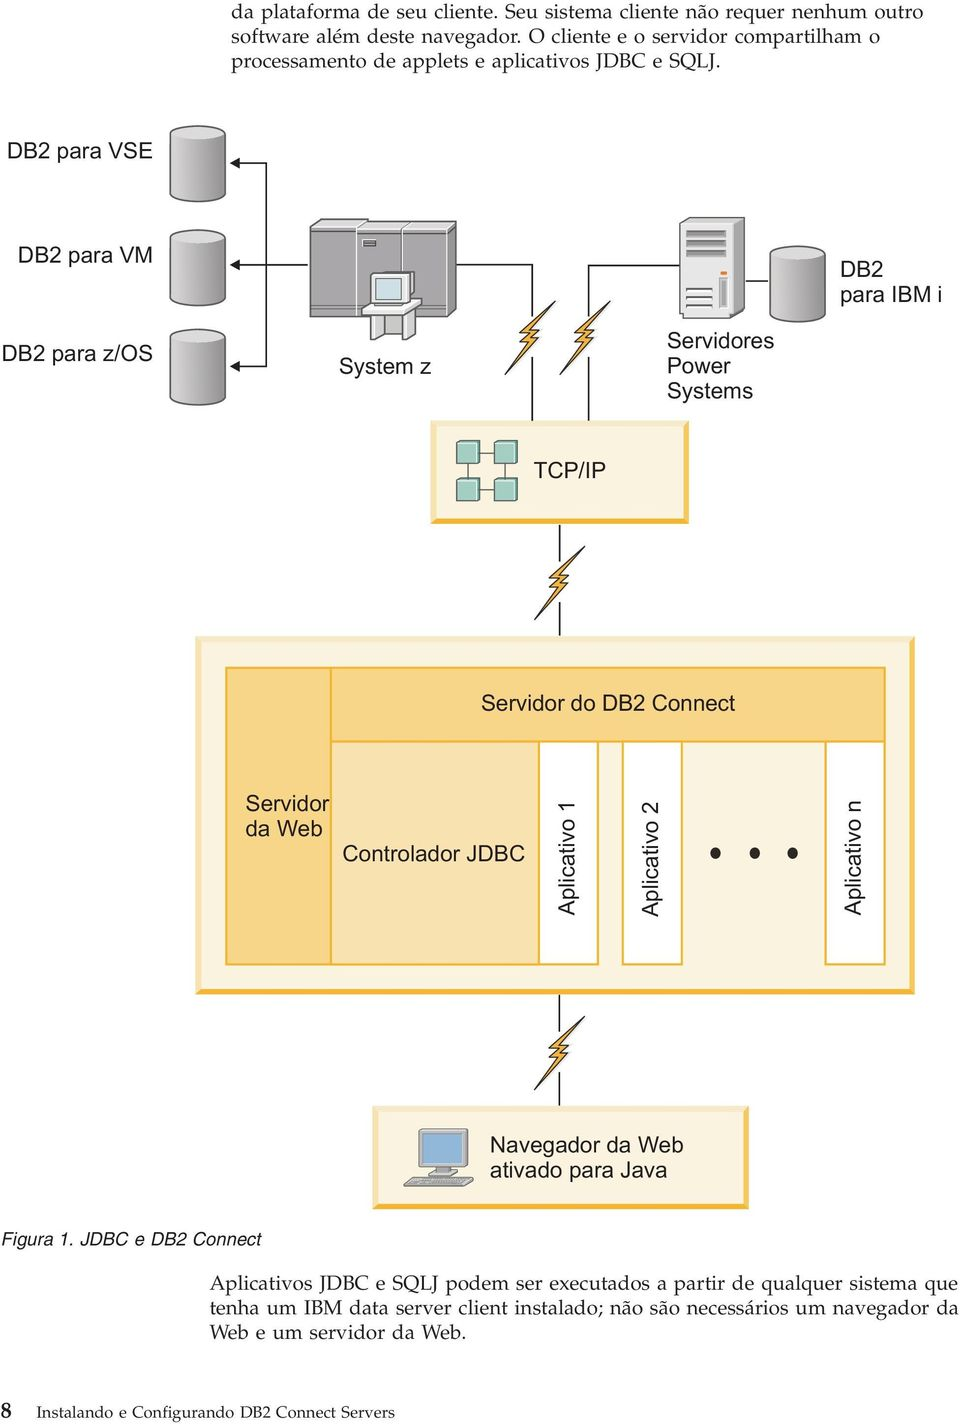 DB2 para VSE DB2 para VM DB2 para IBM i DB2 para z/os System z Seridores Power Systems TCP/IP Seridor do DB2 Connect Seridor da Web Controlador JDBC Aplicatio 1